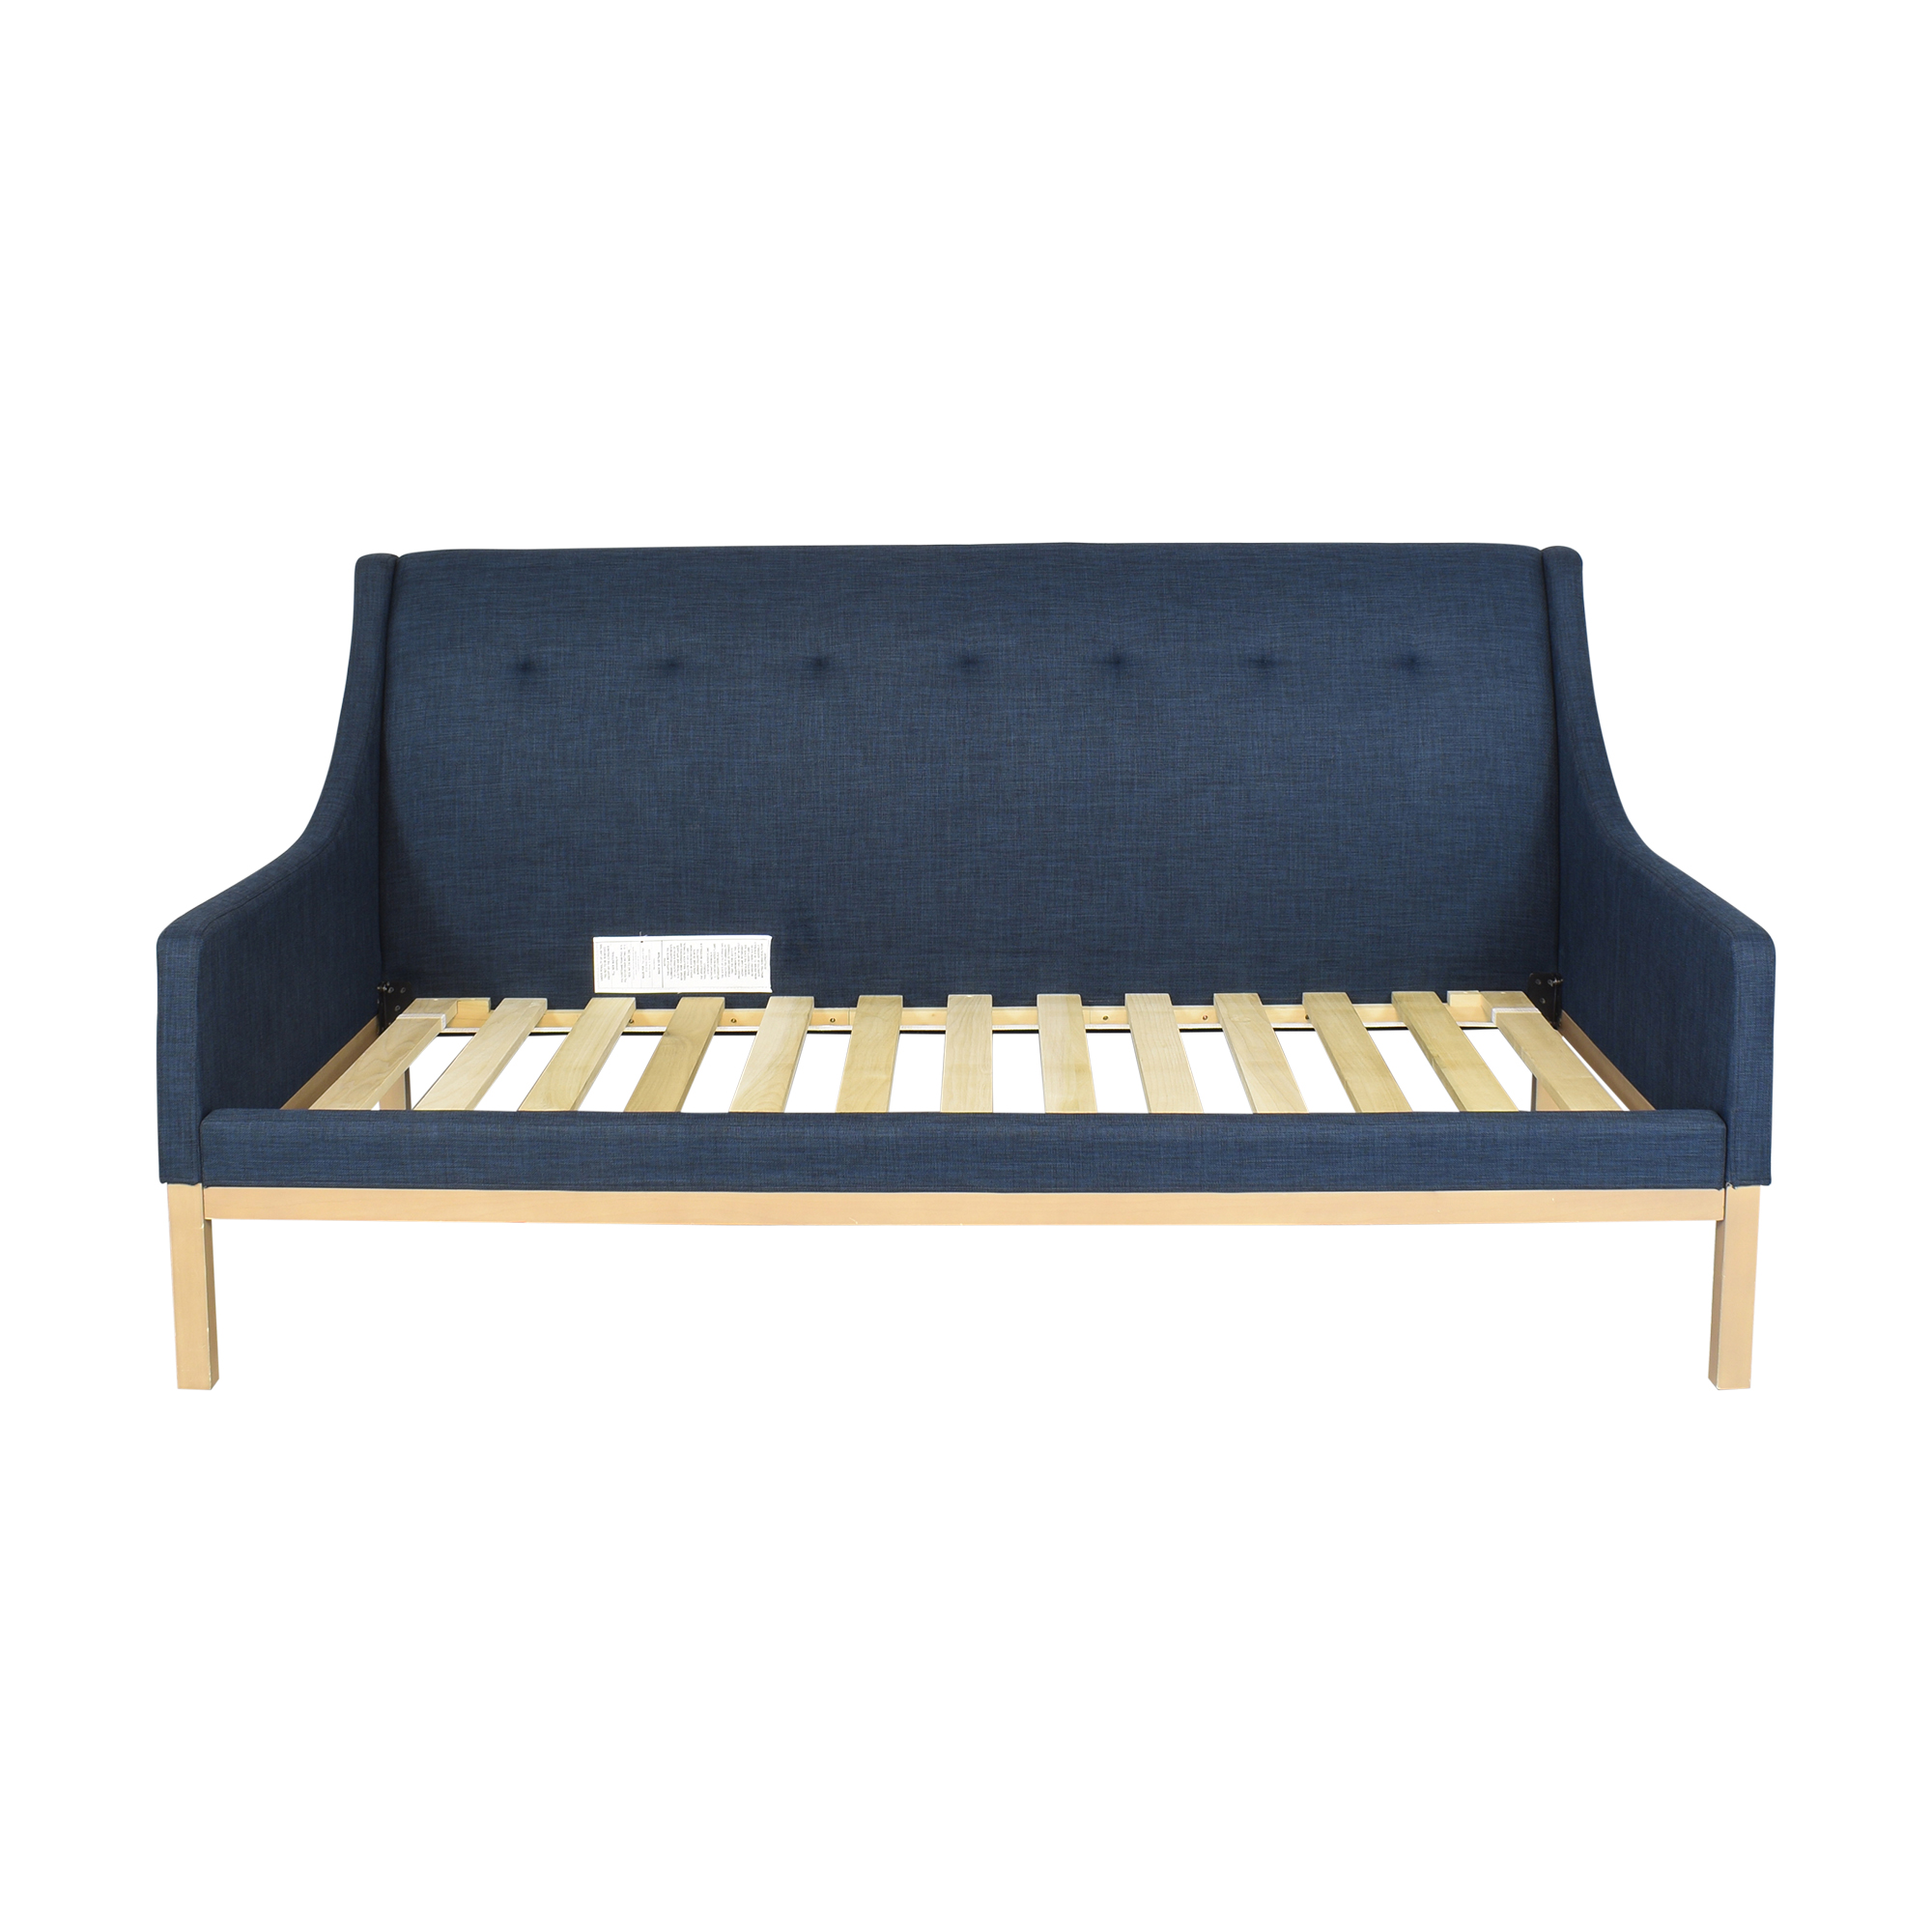 shop Crate & Barrel Crate & Barrel Gallery Daybed online